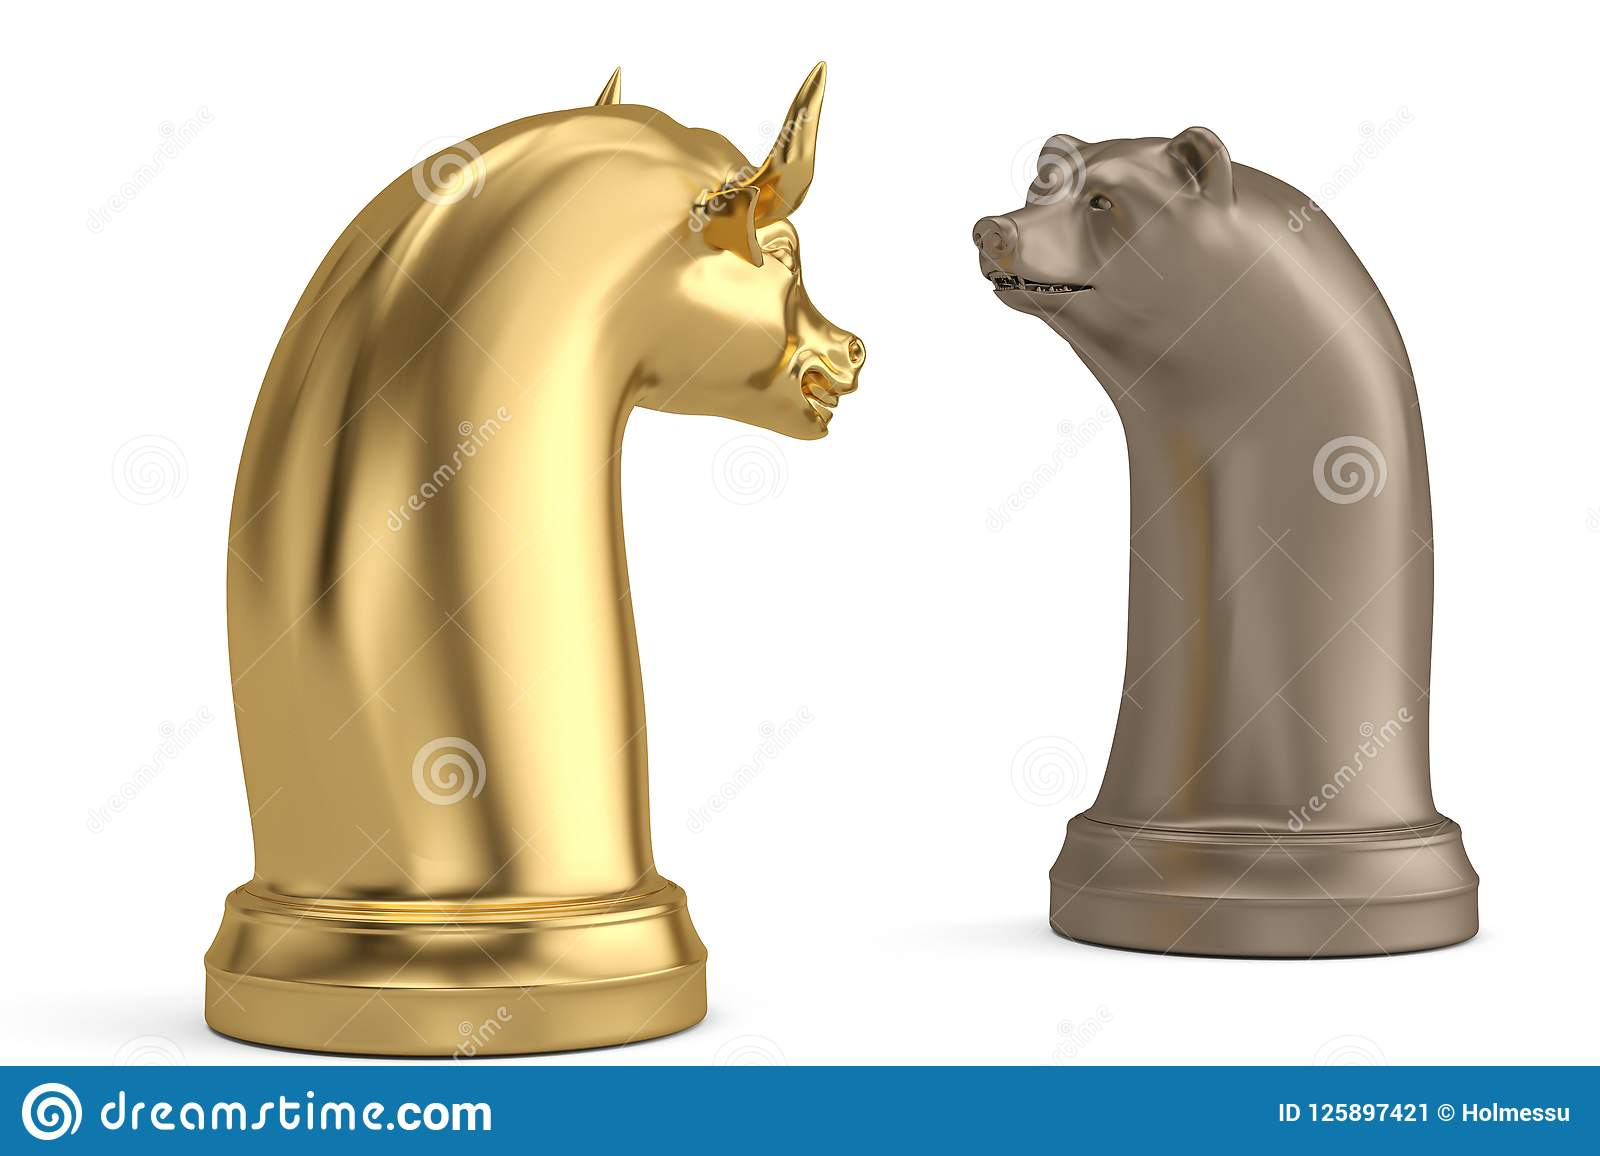 Bear and bull chess piece on white background.3D illustration.